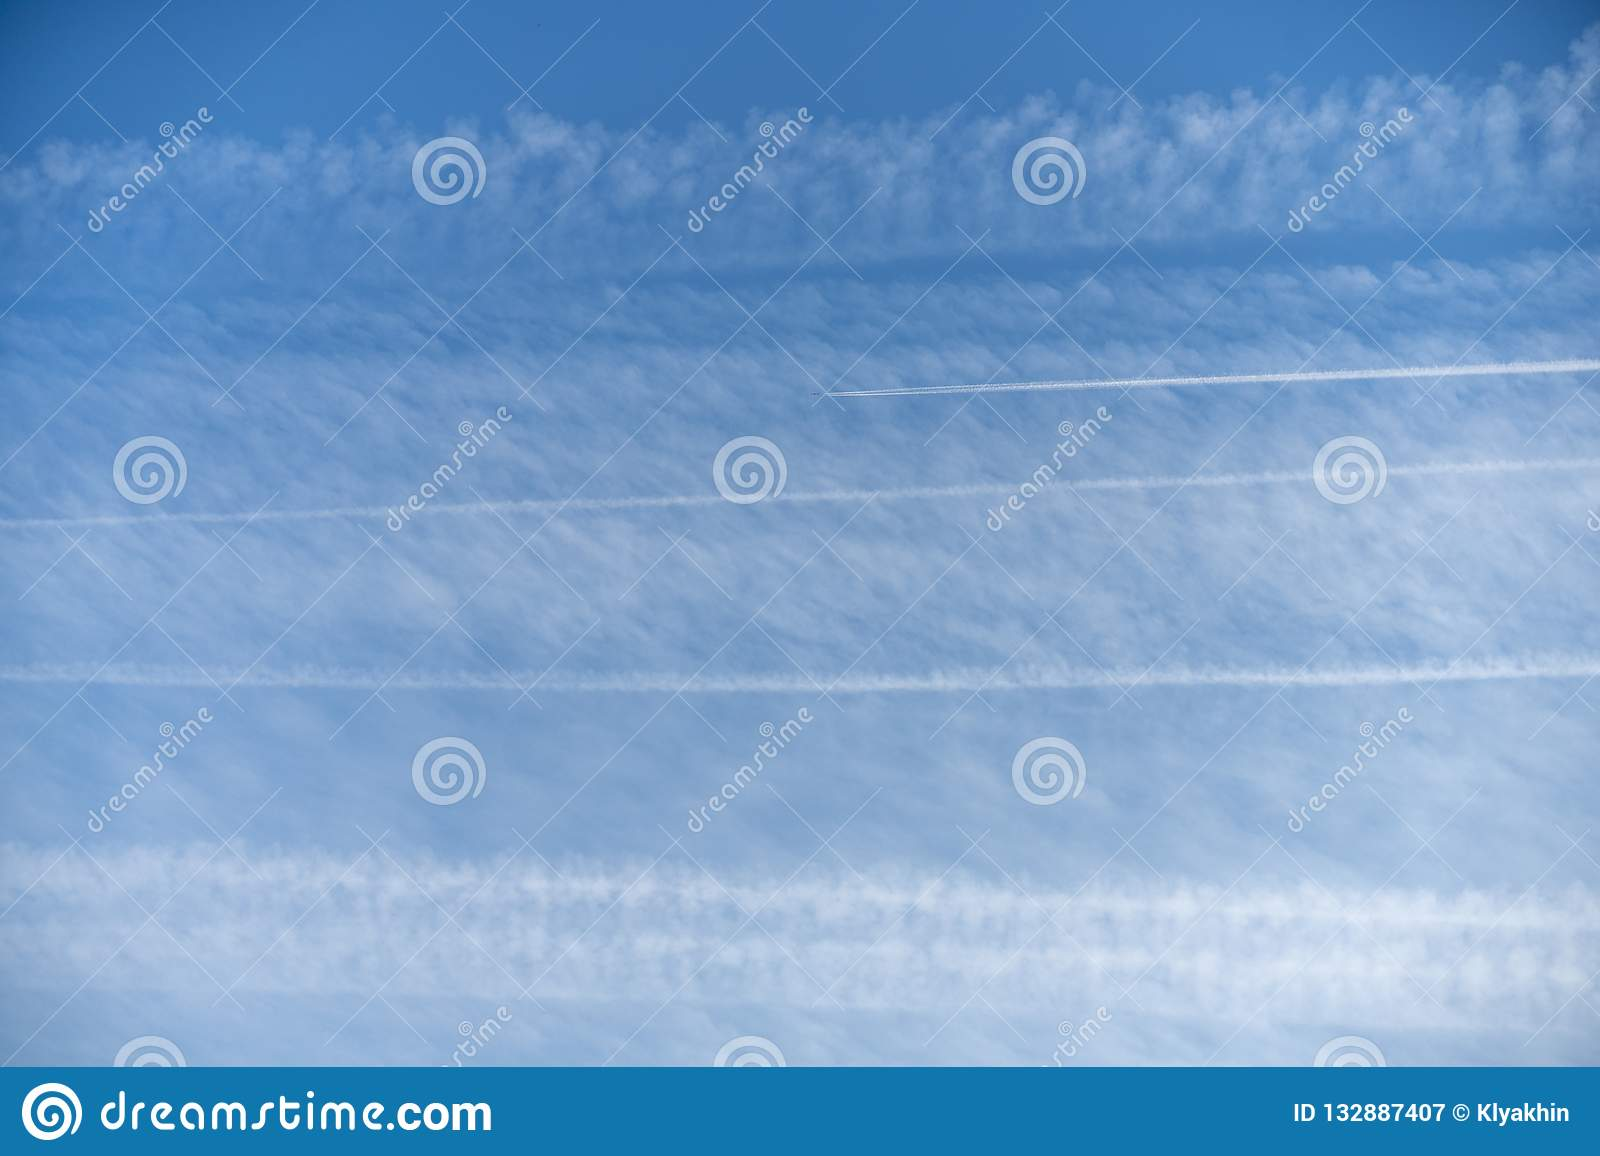 Pattern of airplane trails of condensed air crisscrossing each other against the blue sky